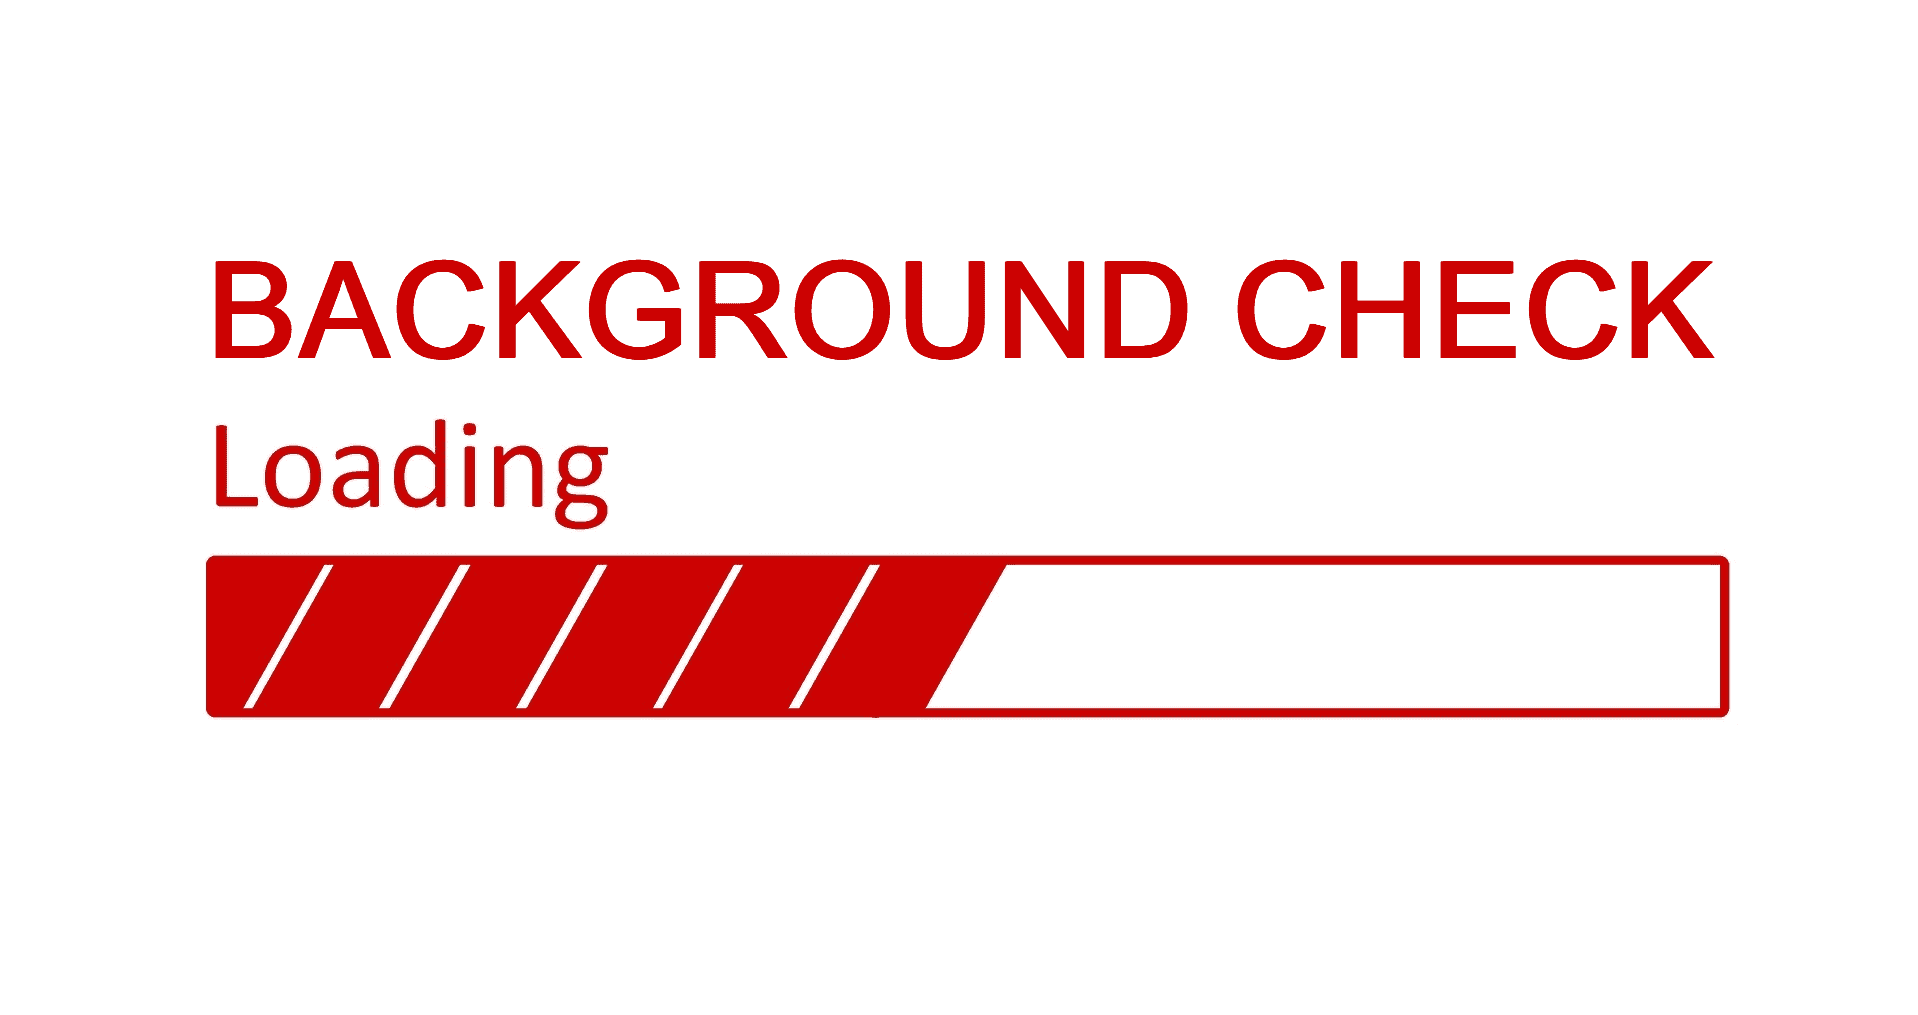 How Long Does a Background Check Take? - Background Checks ...